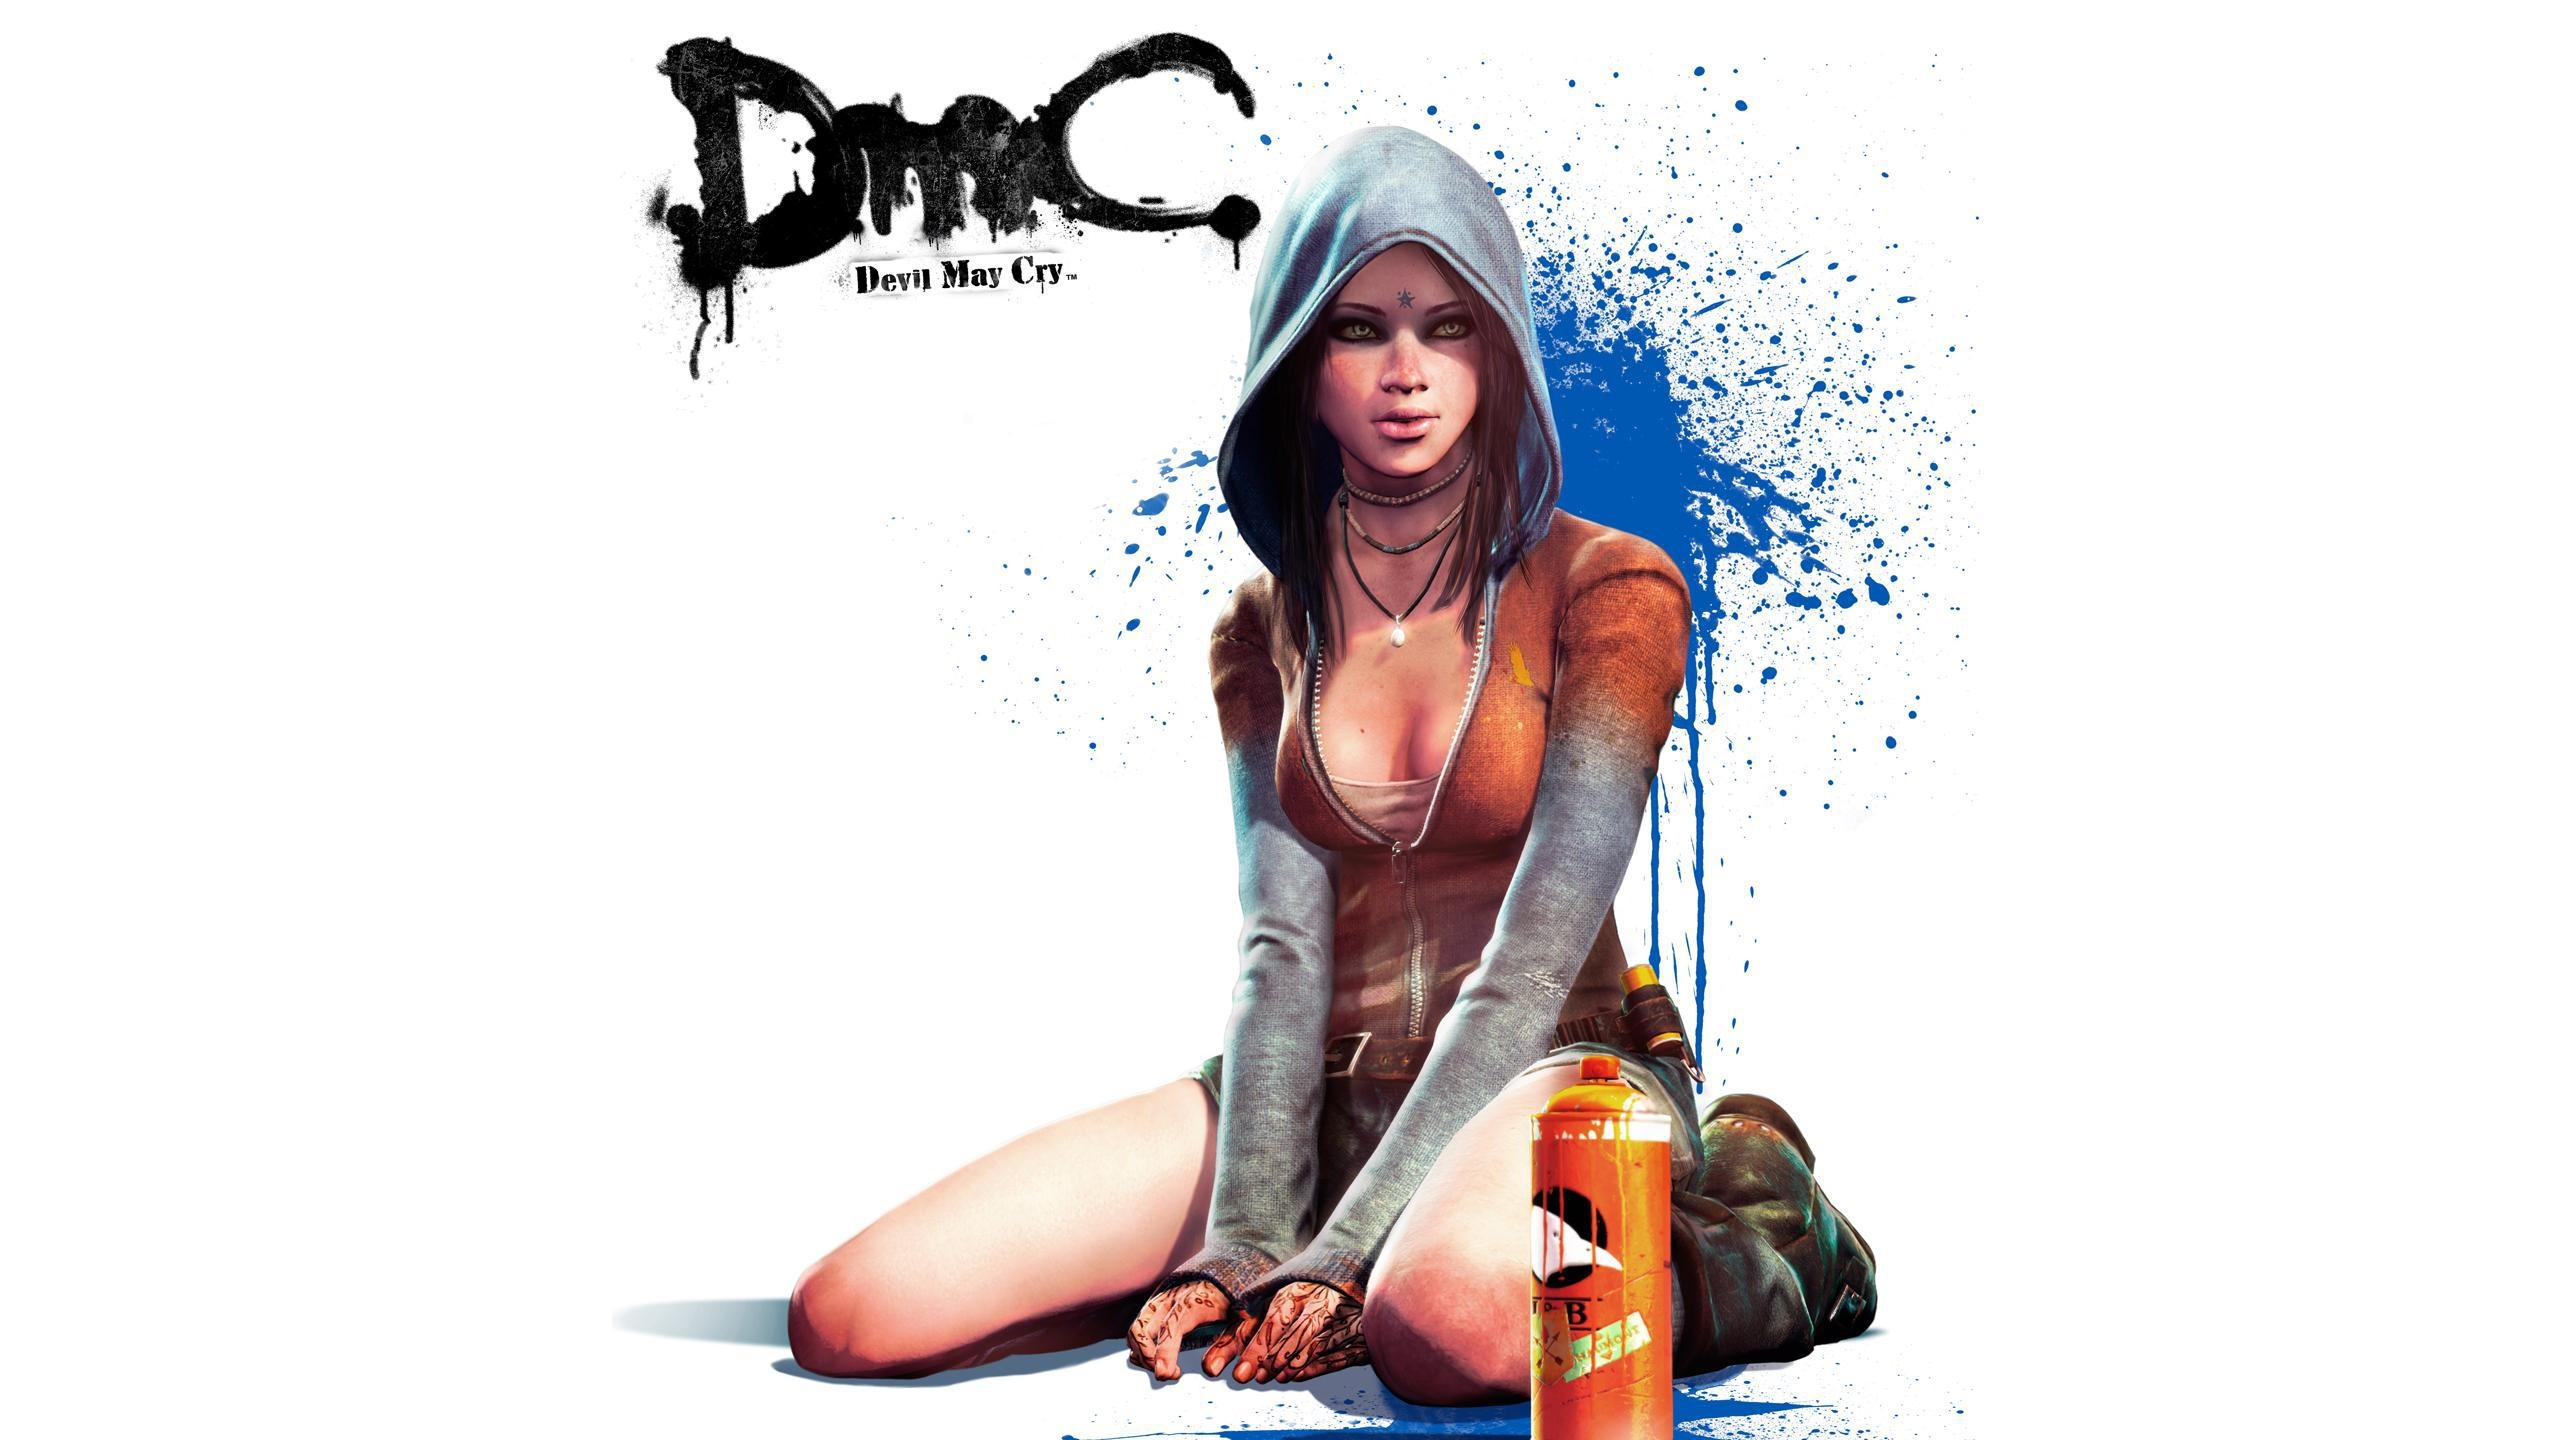 Description: The Wallpaper above is Devil May Cry Girl Wallpaper in Resolution 2560x1440. Choose your Resolution and Download Devil May Cry Girl Wallpaper